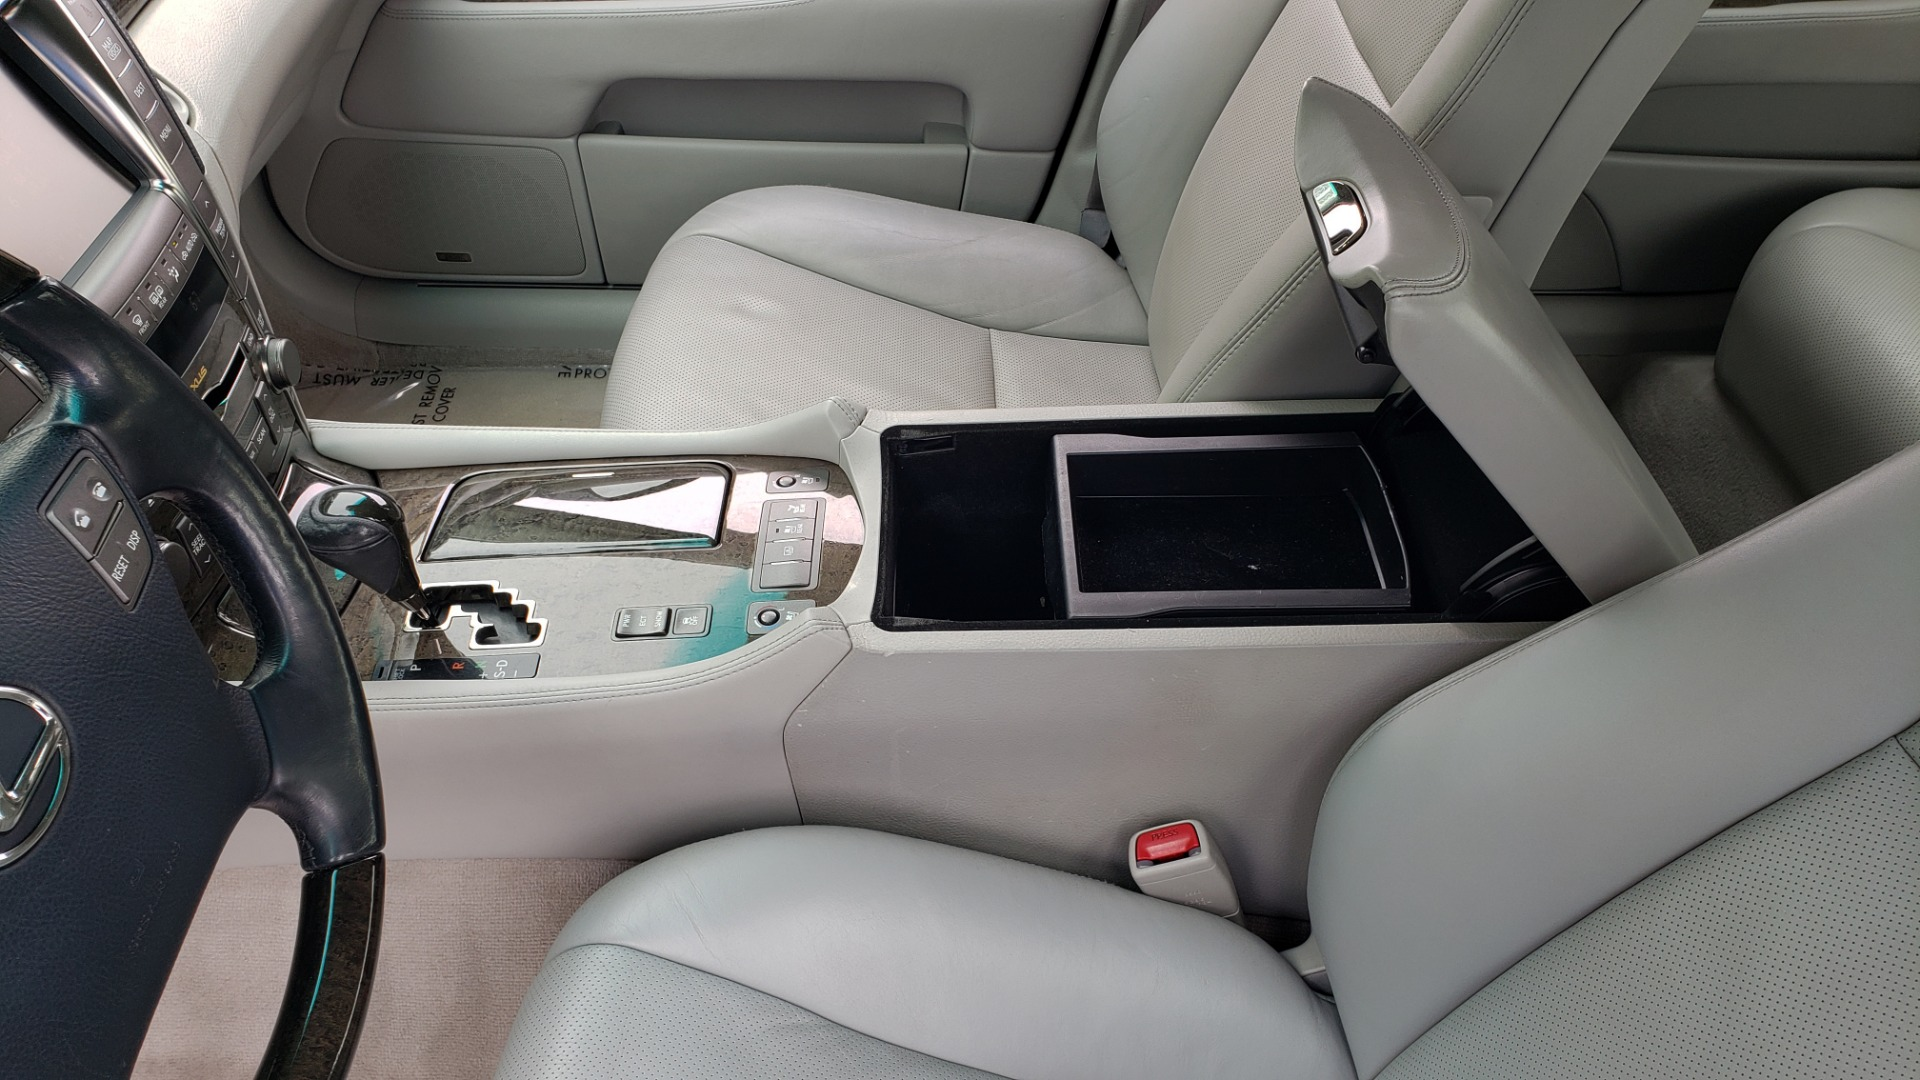 Used 2008 Lexus LS 460 LWB LUXURY SEDAN / MARK LEVINSON / INT PARK ASST / REARVIEW for sale Sold at Formula Imports in Charlotte NC 28227 55